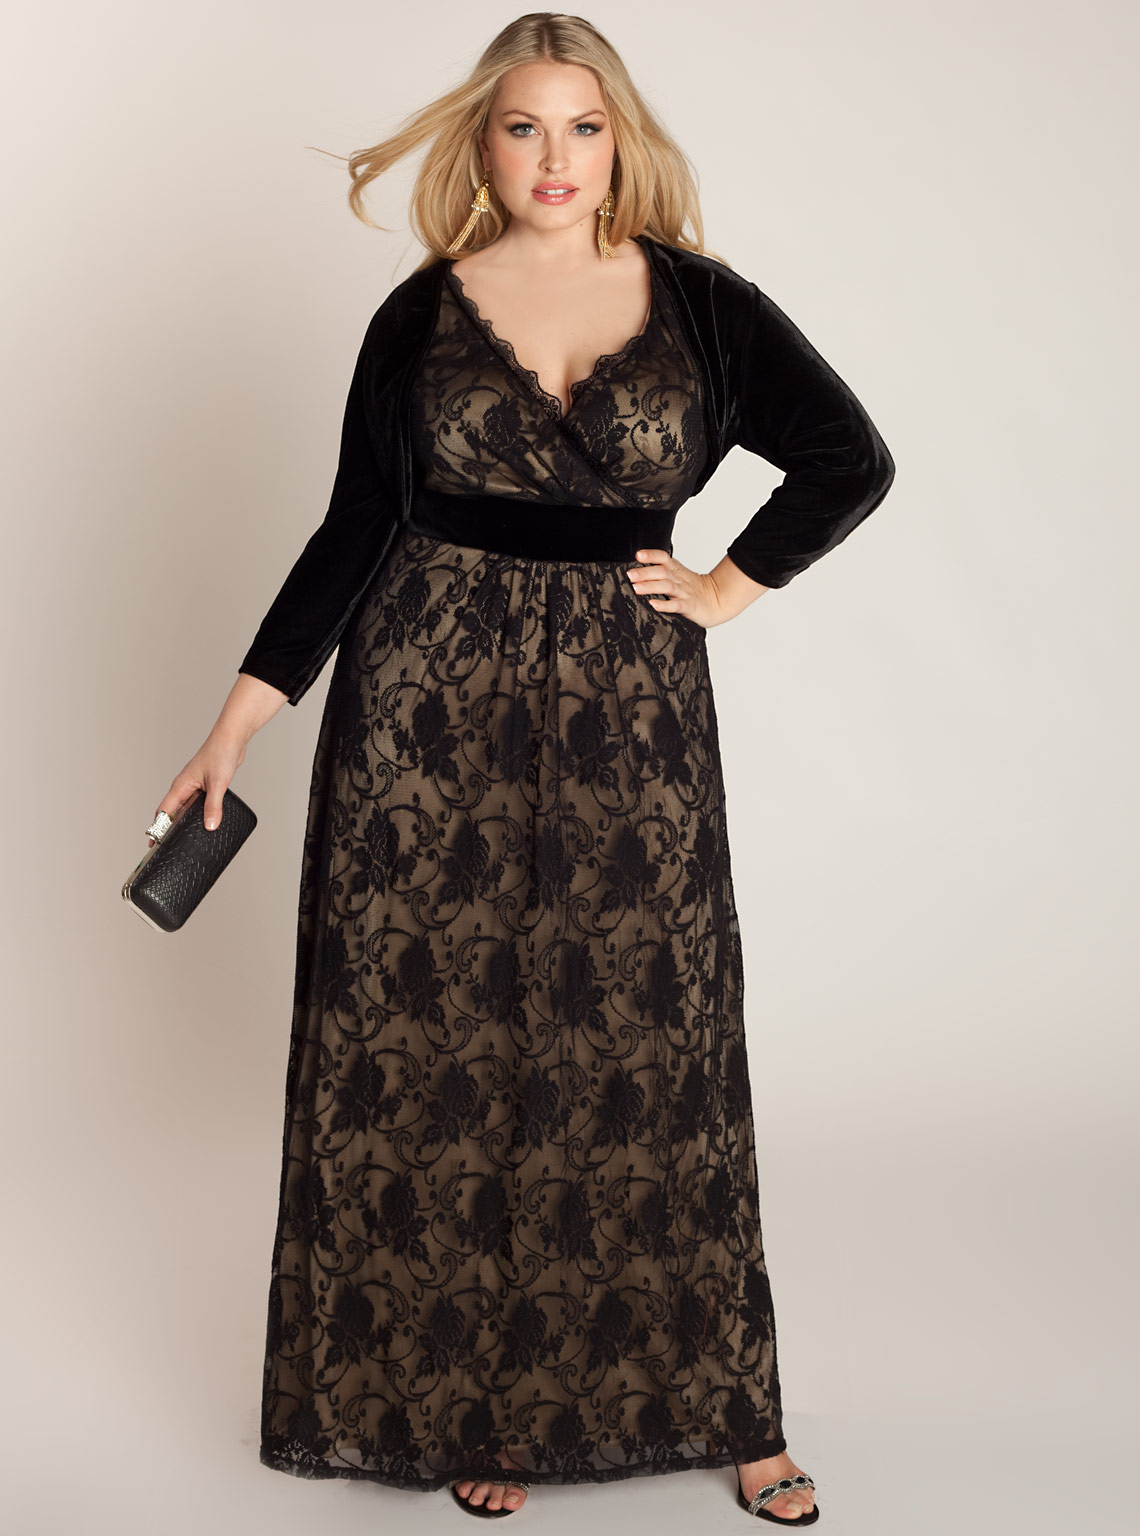 Dress: Plus Size Lace Dress Picture Collection